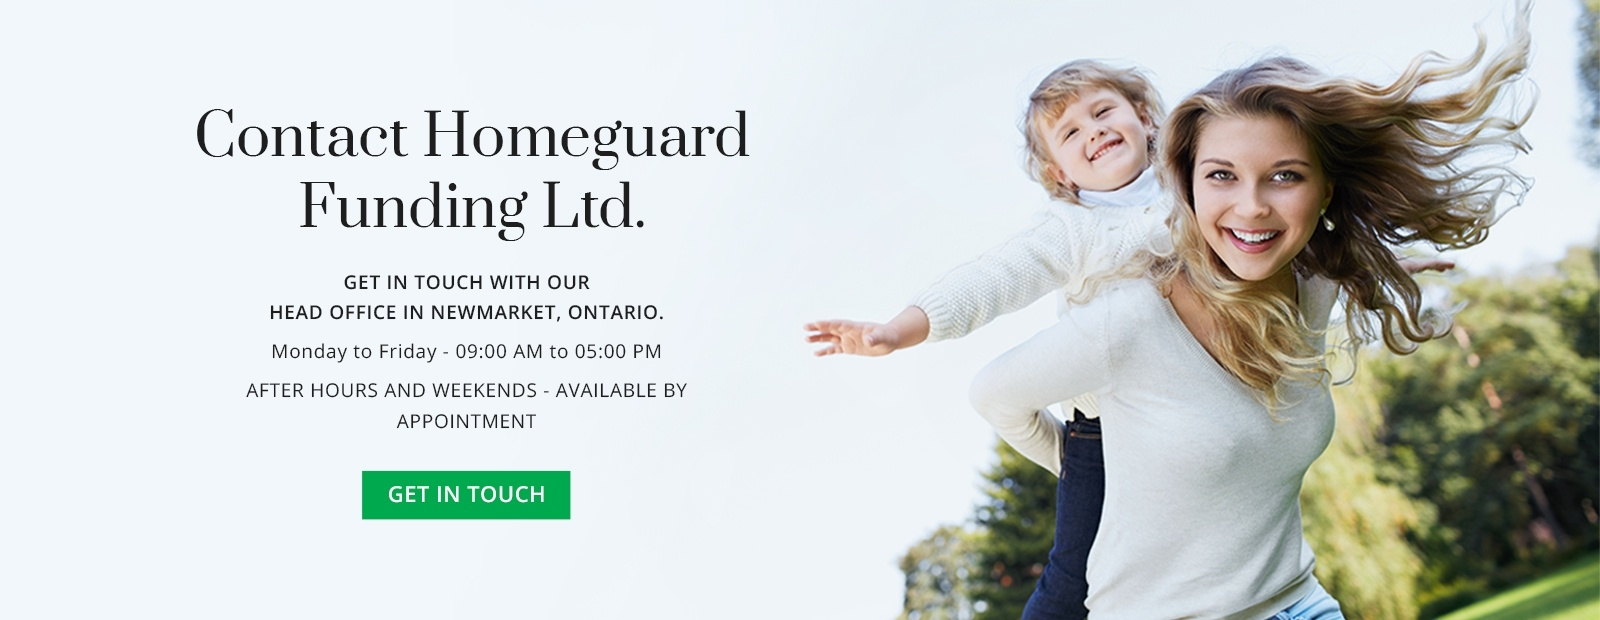 Home Purchase Mortgage Toronto